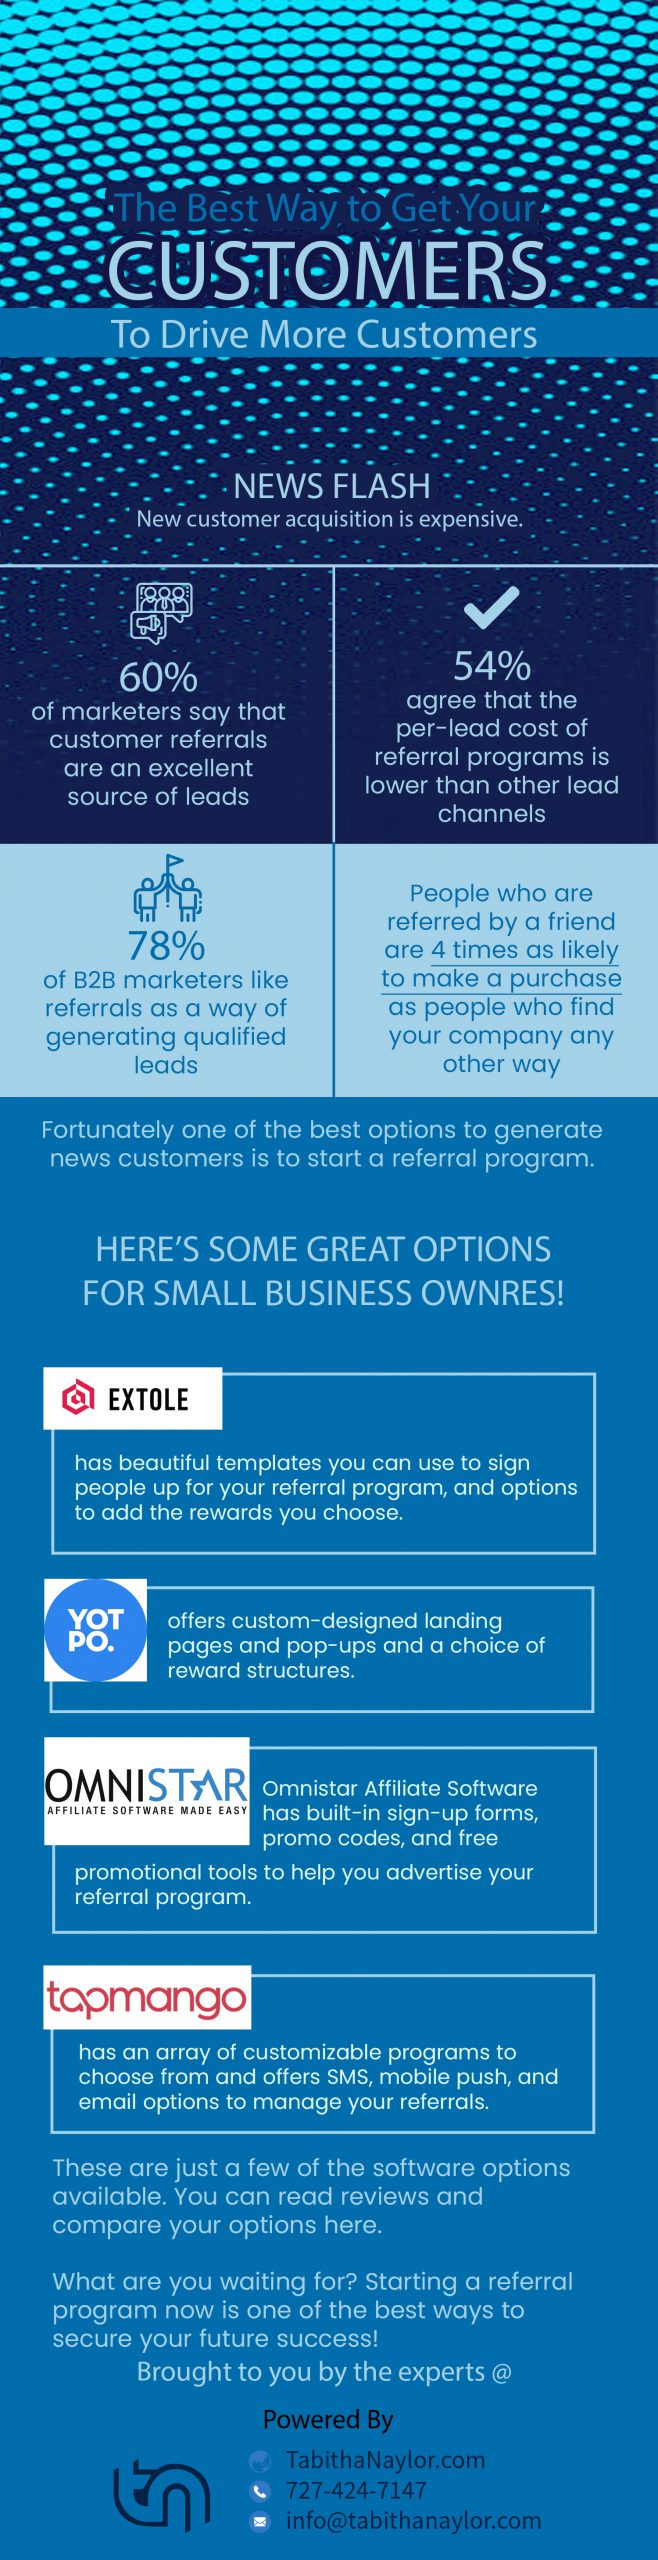 The-Best-Way-to-Get-Your-Customers-to-Drive-More-Customers-scaled